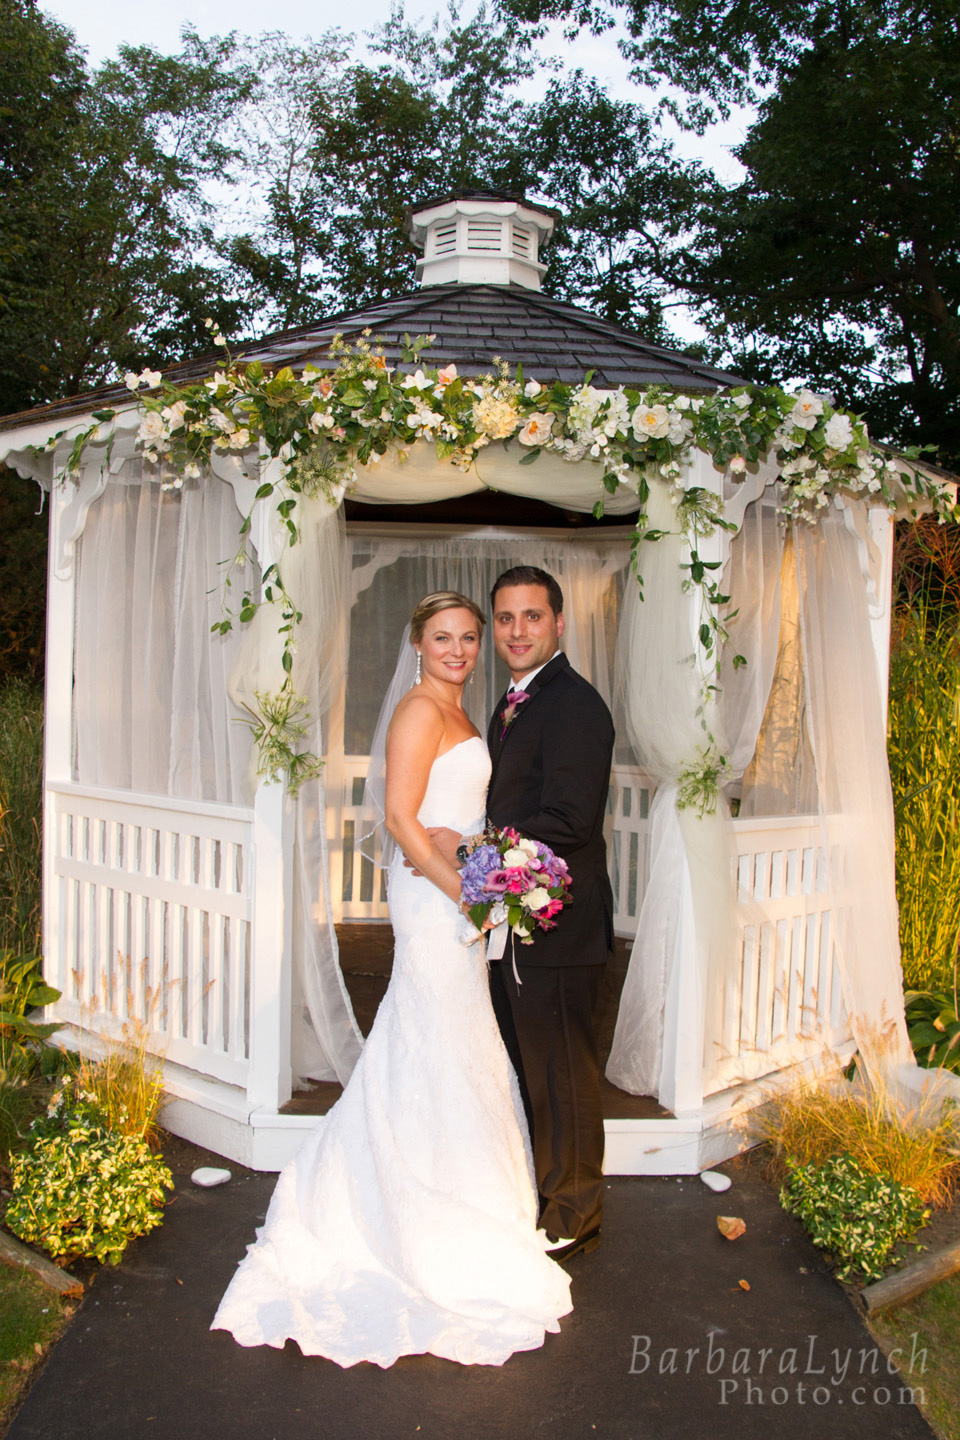 nahant personals Our experienced team prides itself on being familiar with almost thirty popular area venues available for your catered events we know venue formats, capacities.